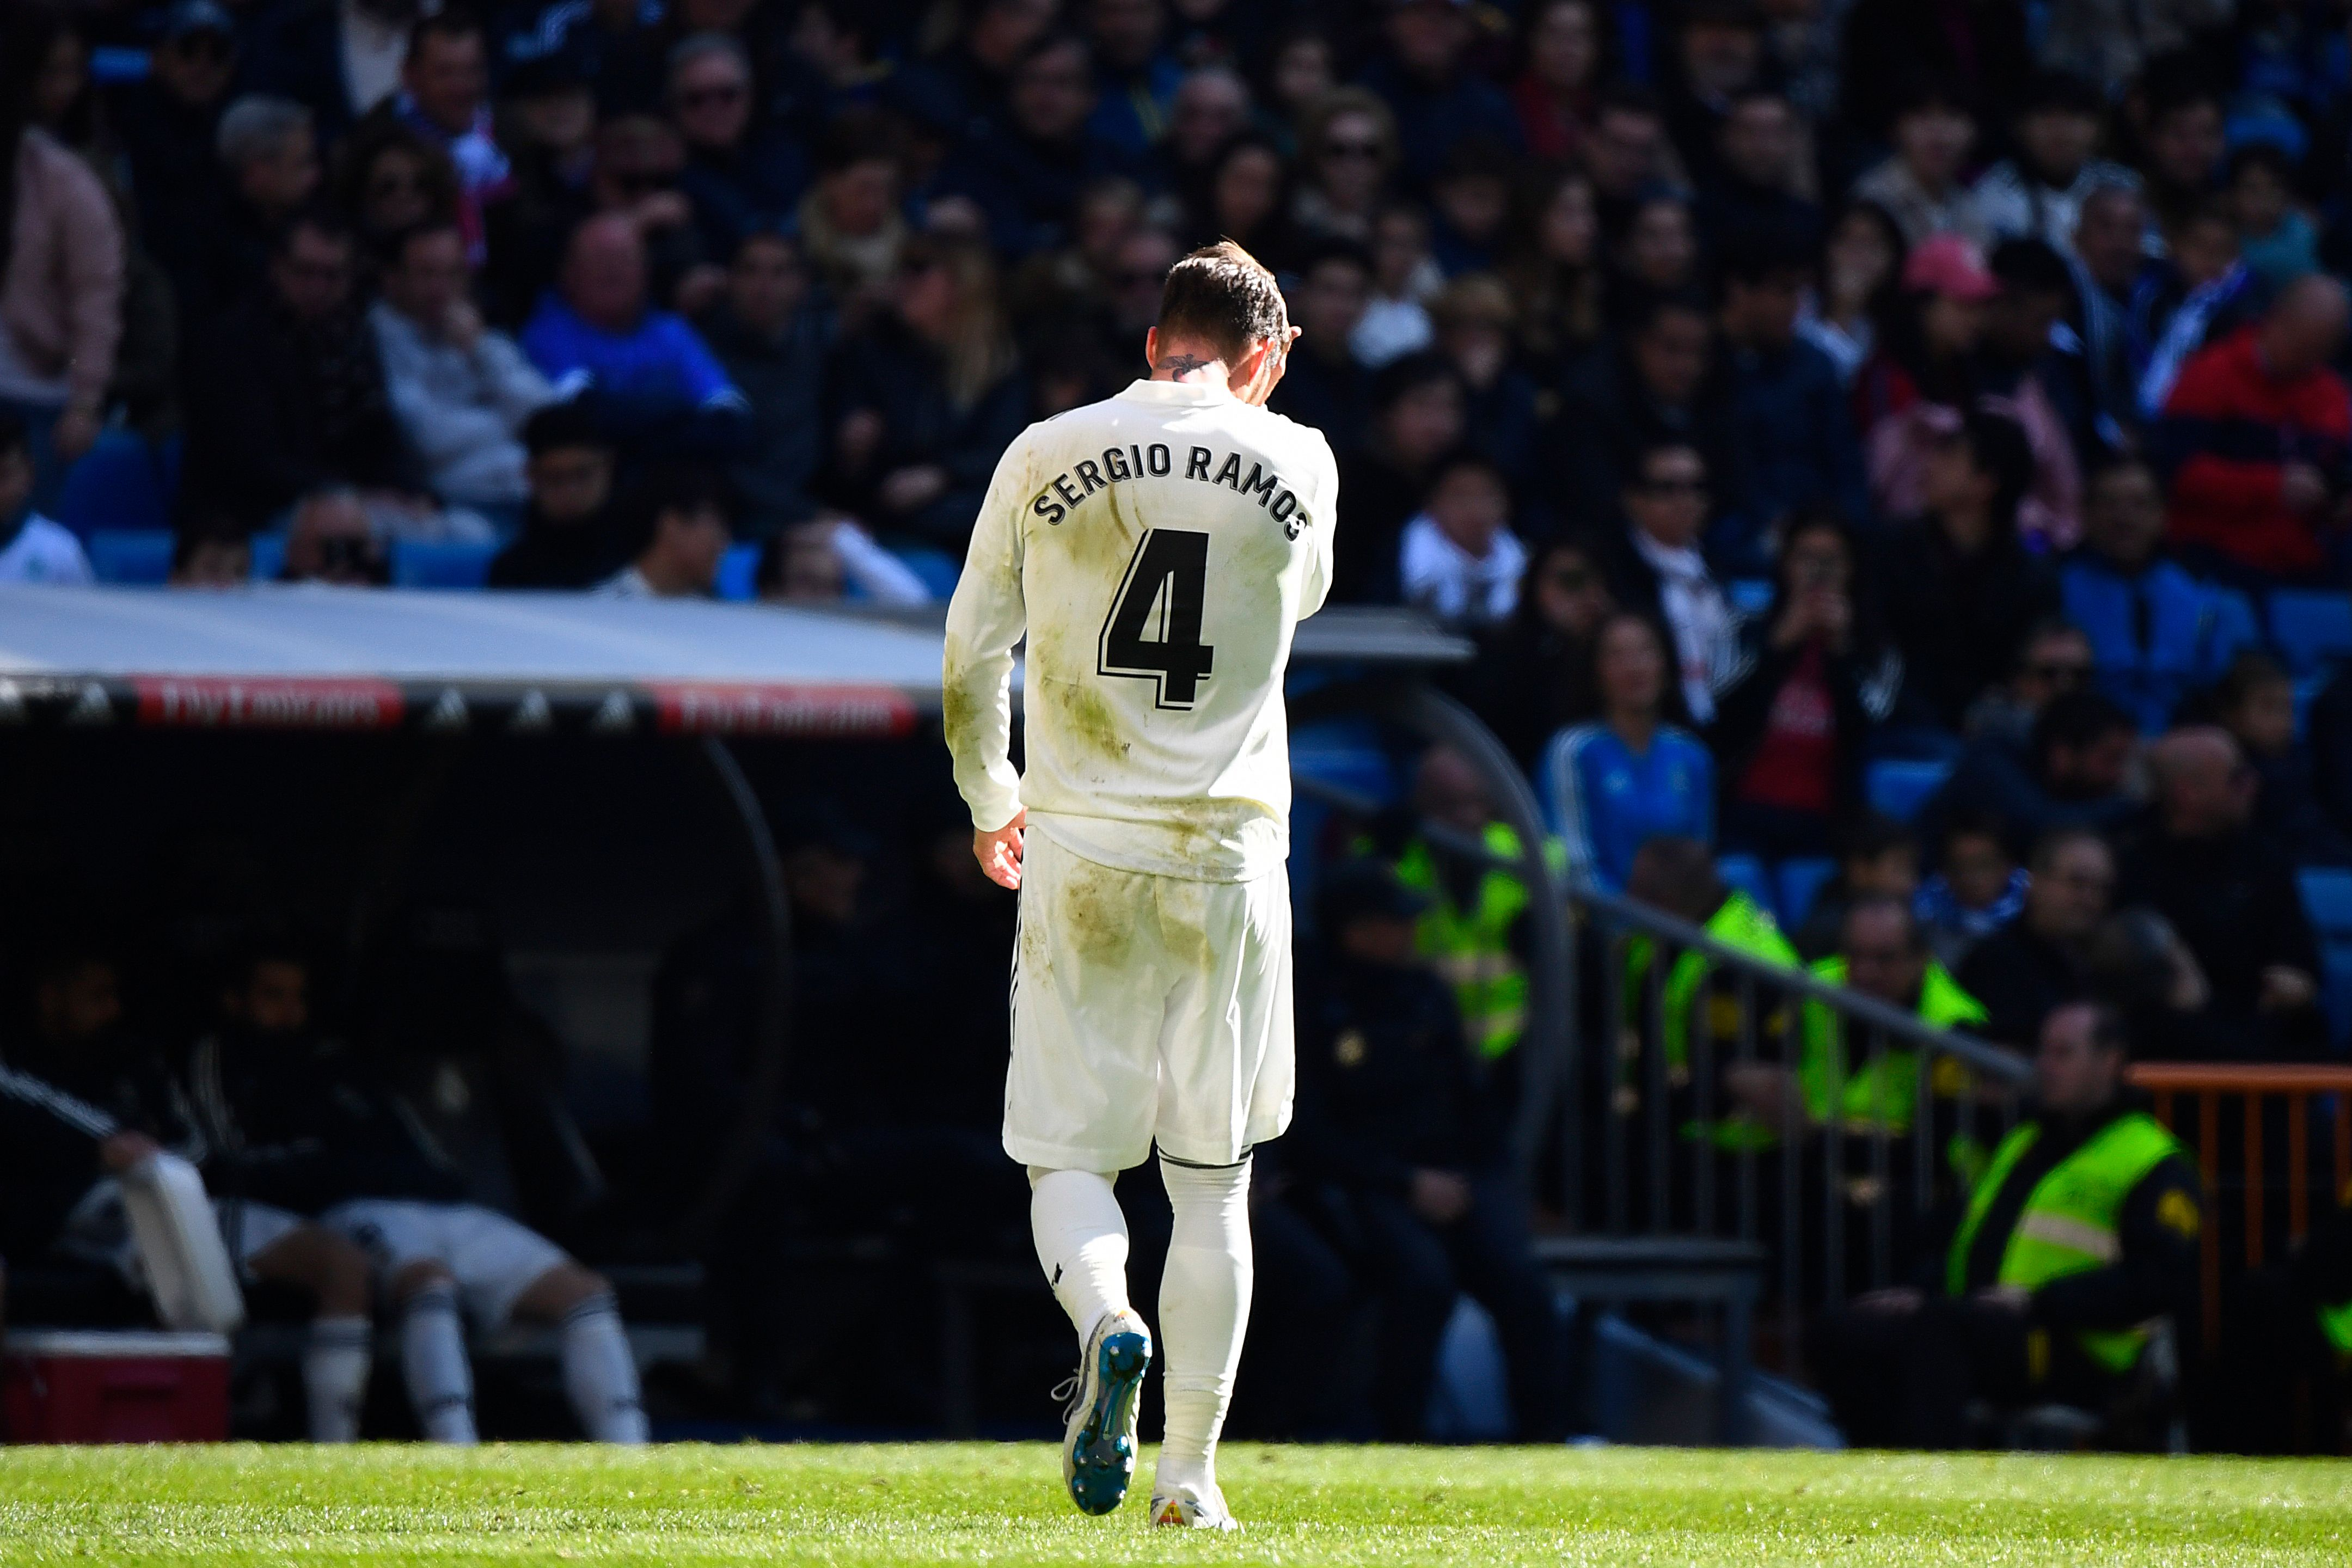 Real Madrid's Spanish defender Sergio Ramos walks off the pitch after receiving a red card during the Spanish League football match between Real Madrid and Girona at the Santiago Bernabeu stadium in Madrid on February 17, 2019. (Photo by GABRIEL BOUYS / AFP)